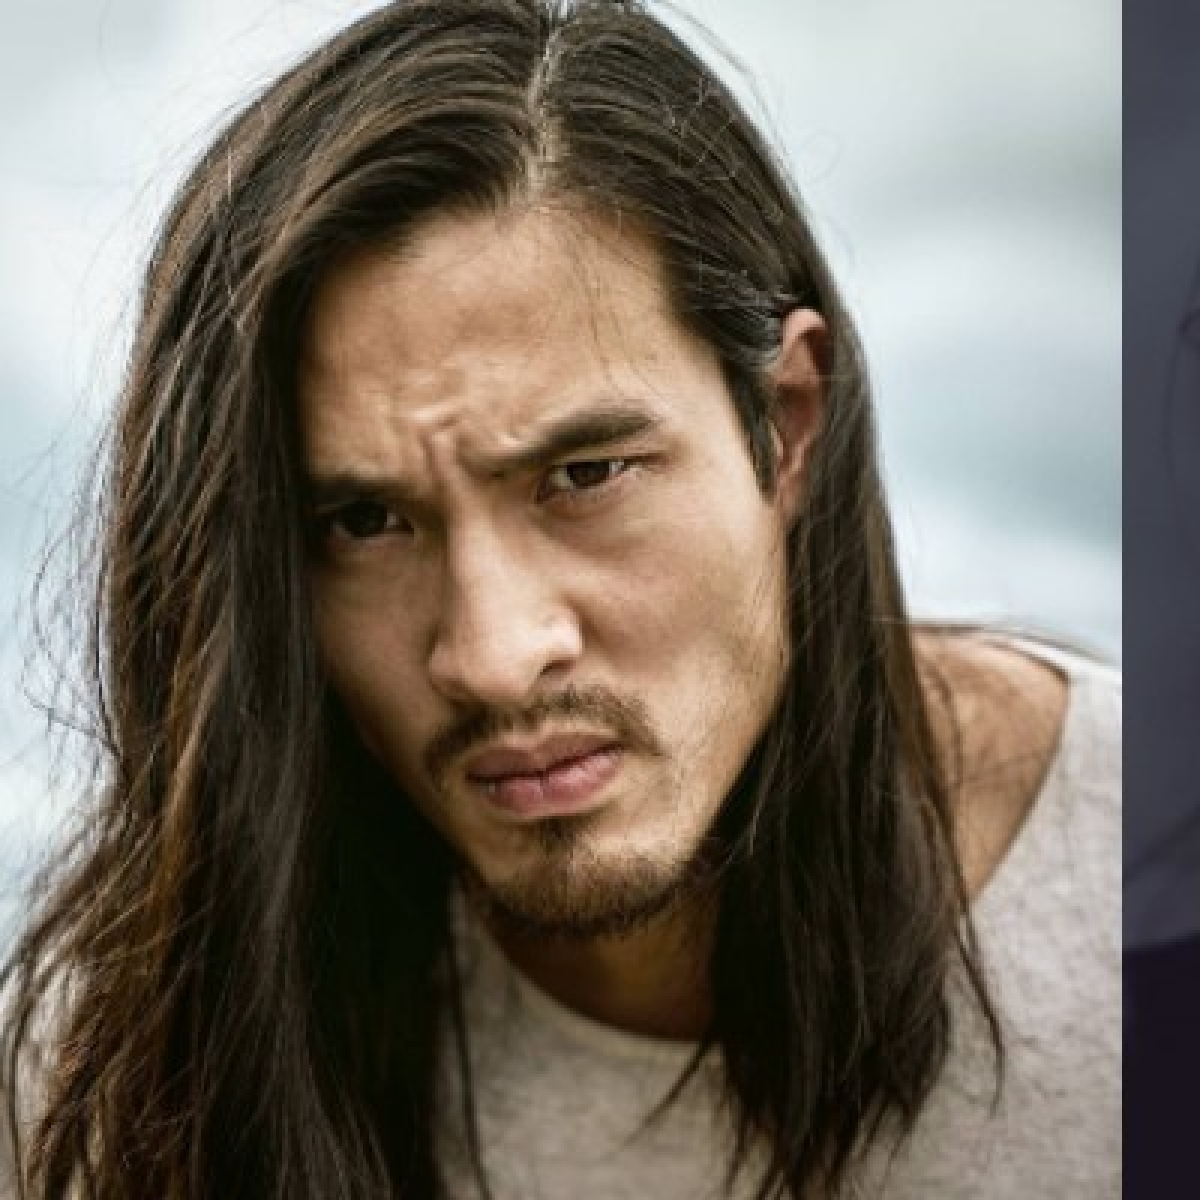 Desmond Chiam, Miki Ishikawa to star in 'The Falcon and the Winter Soldier'?